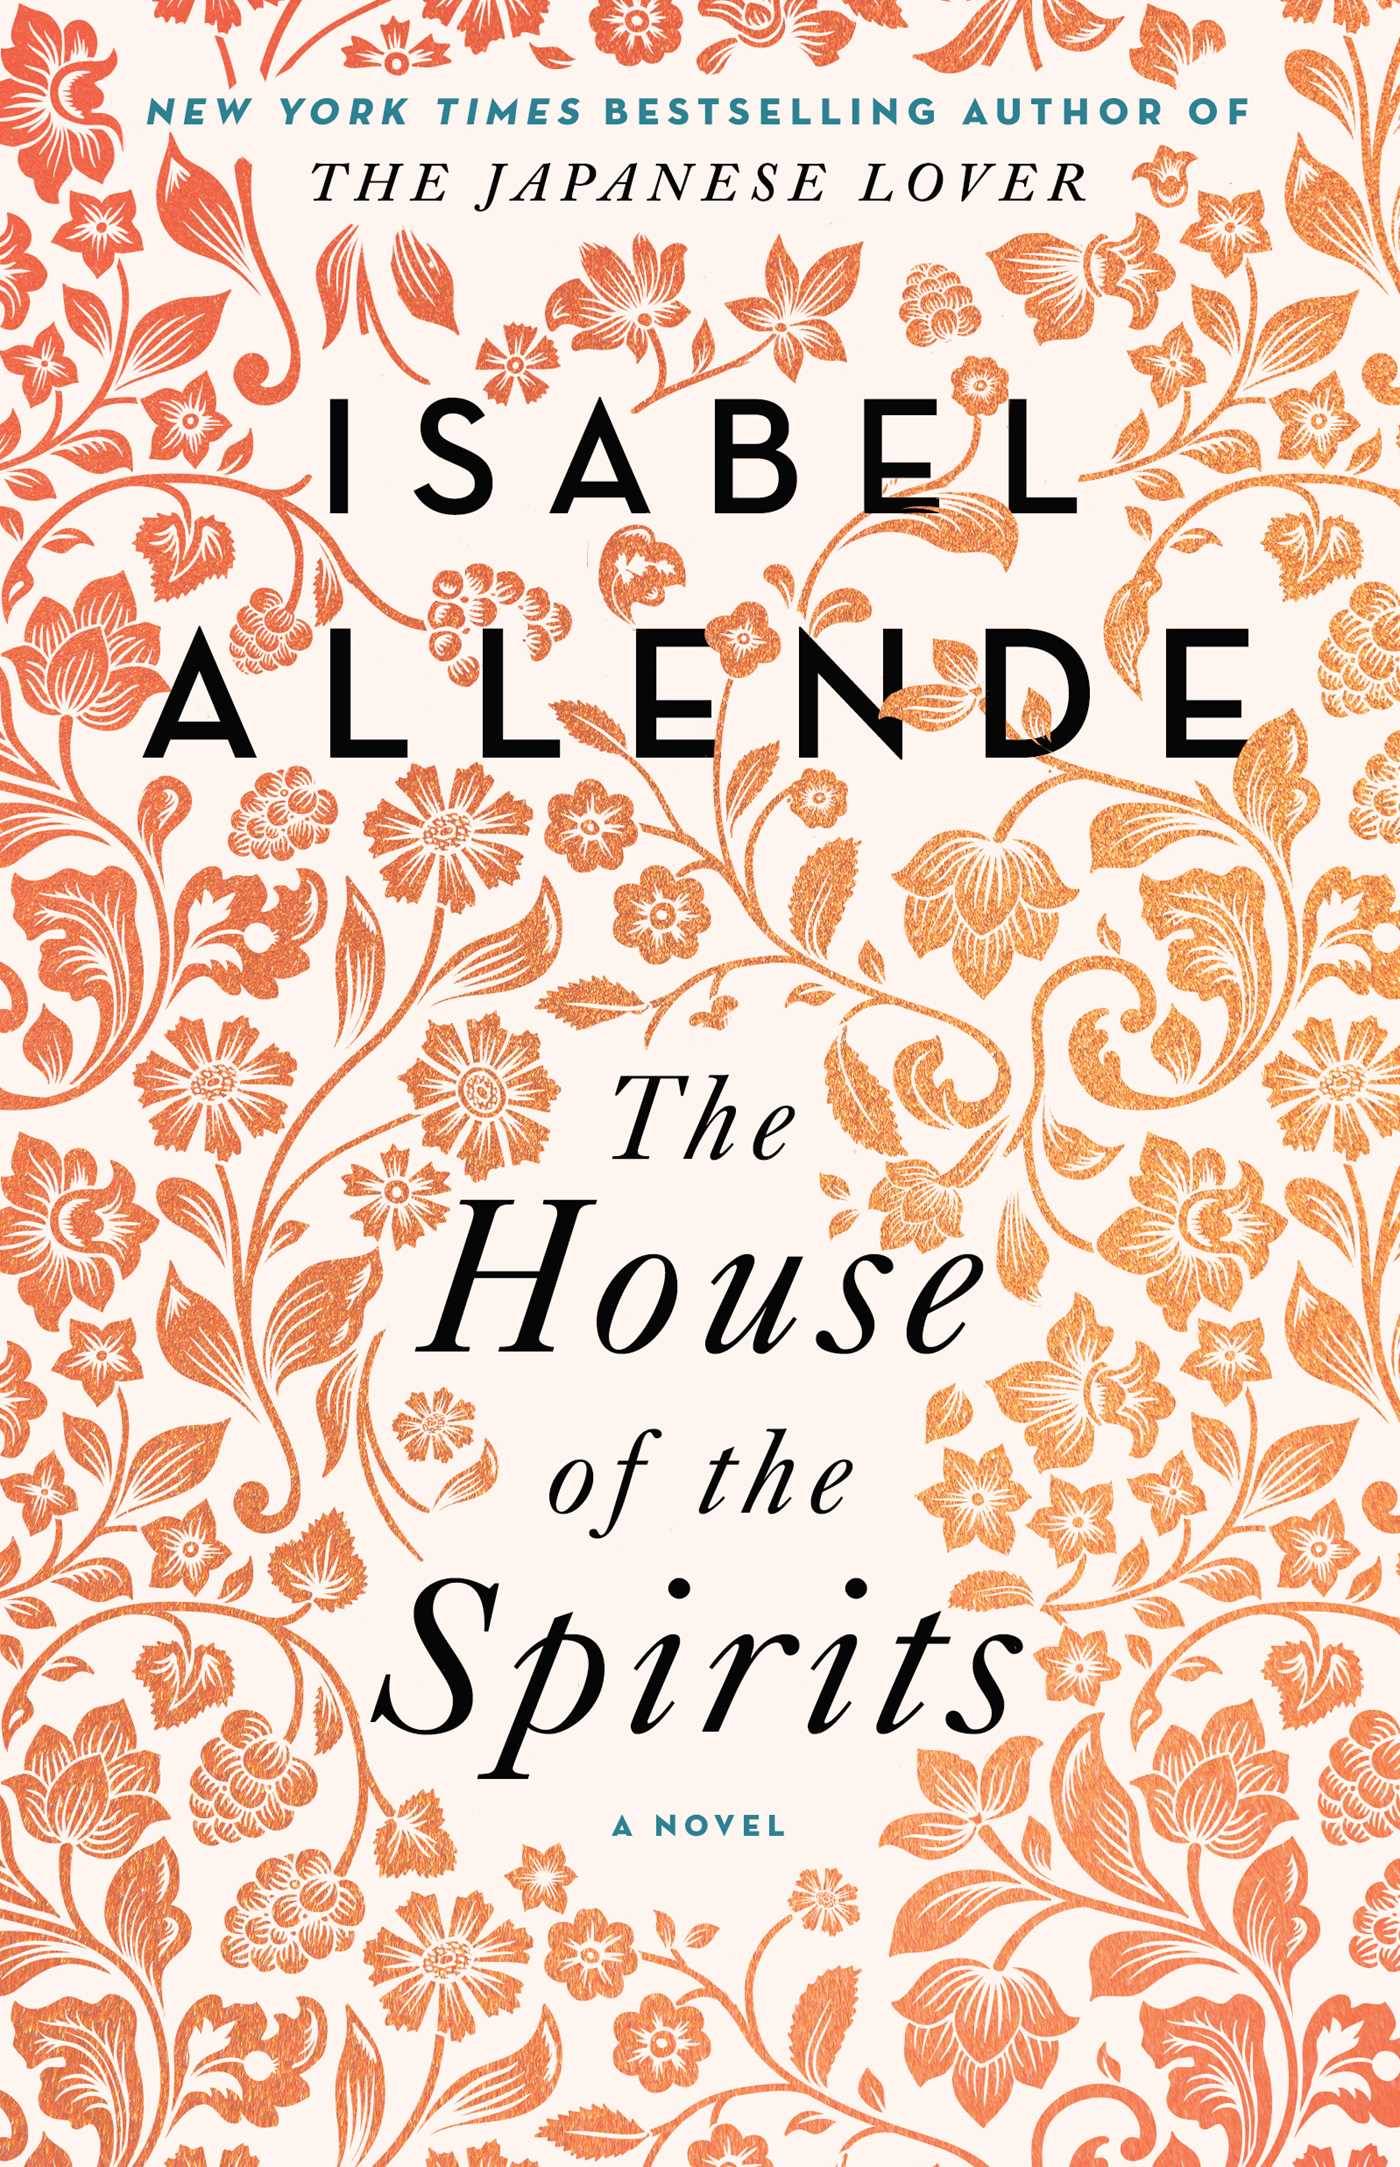 'The House of the Spirits' by Isabel Allende